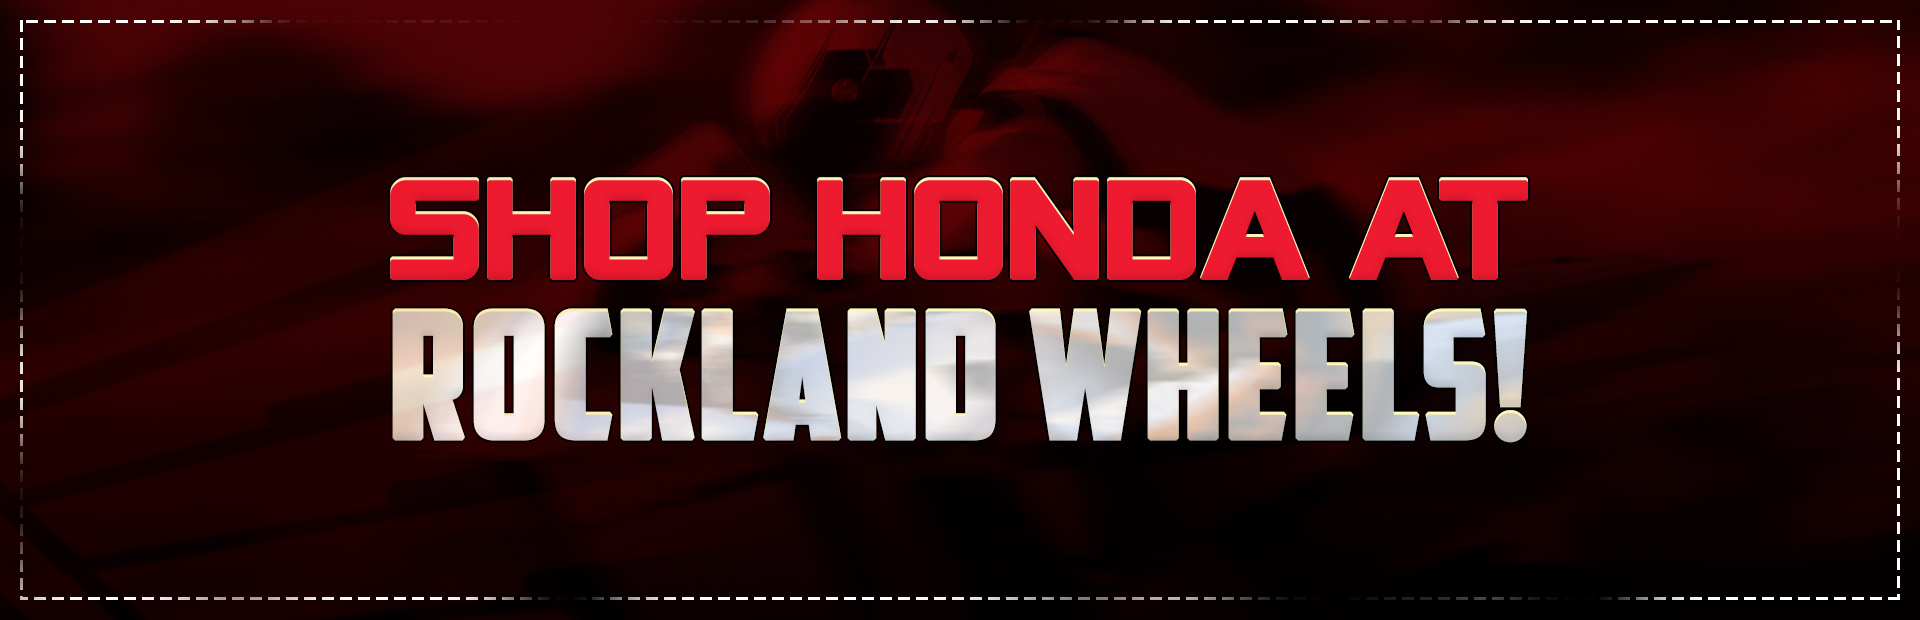 Shop Honda at Rockland Wheels!